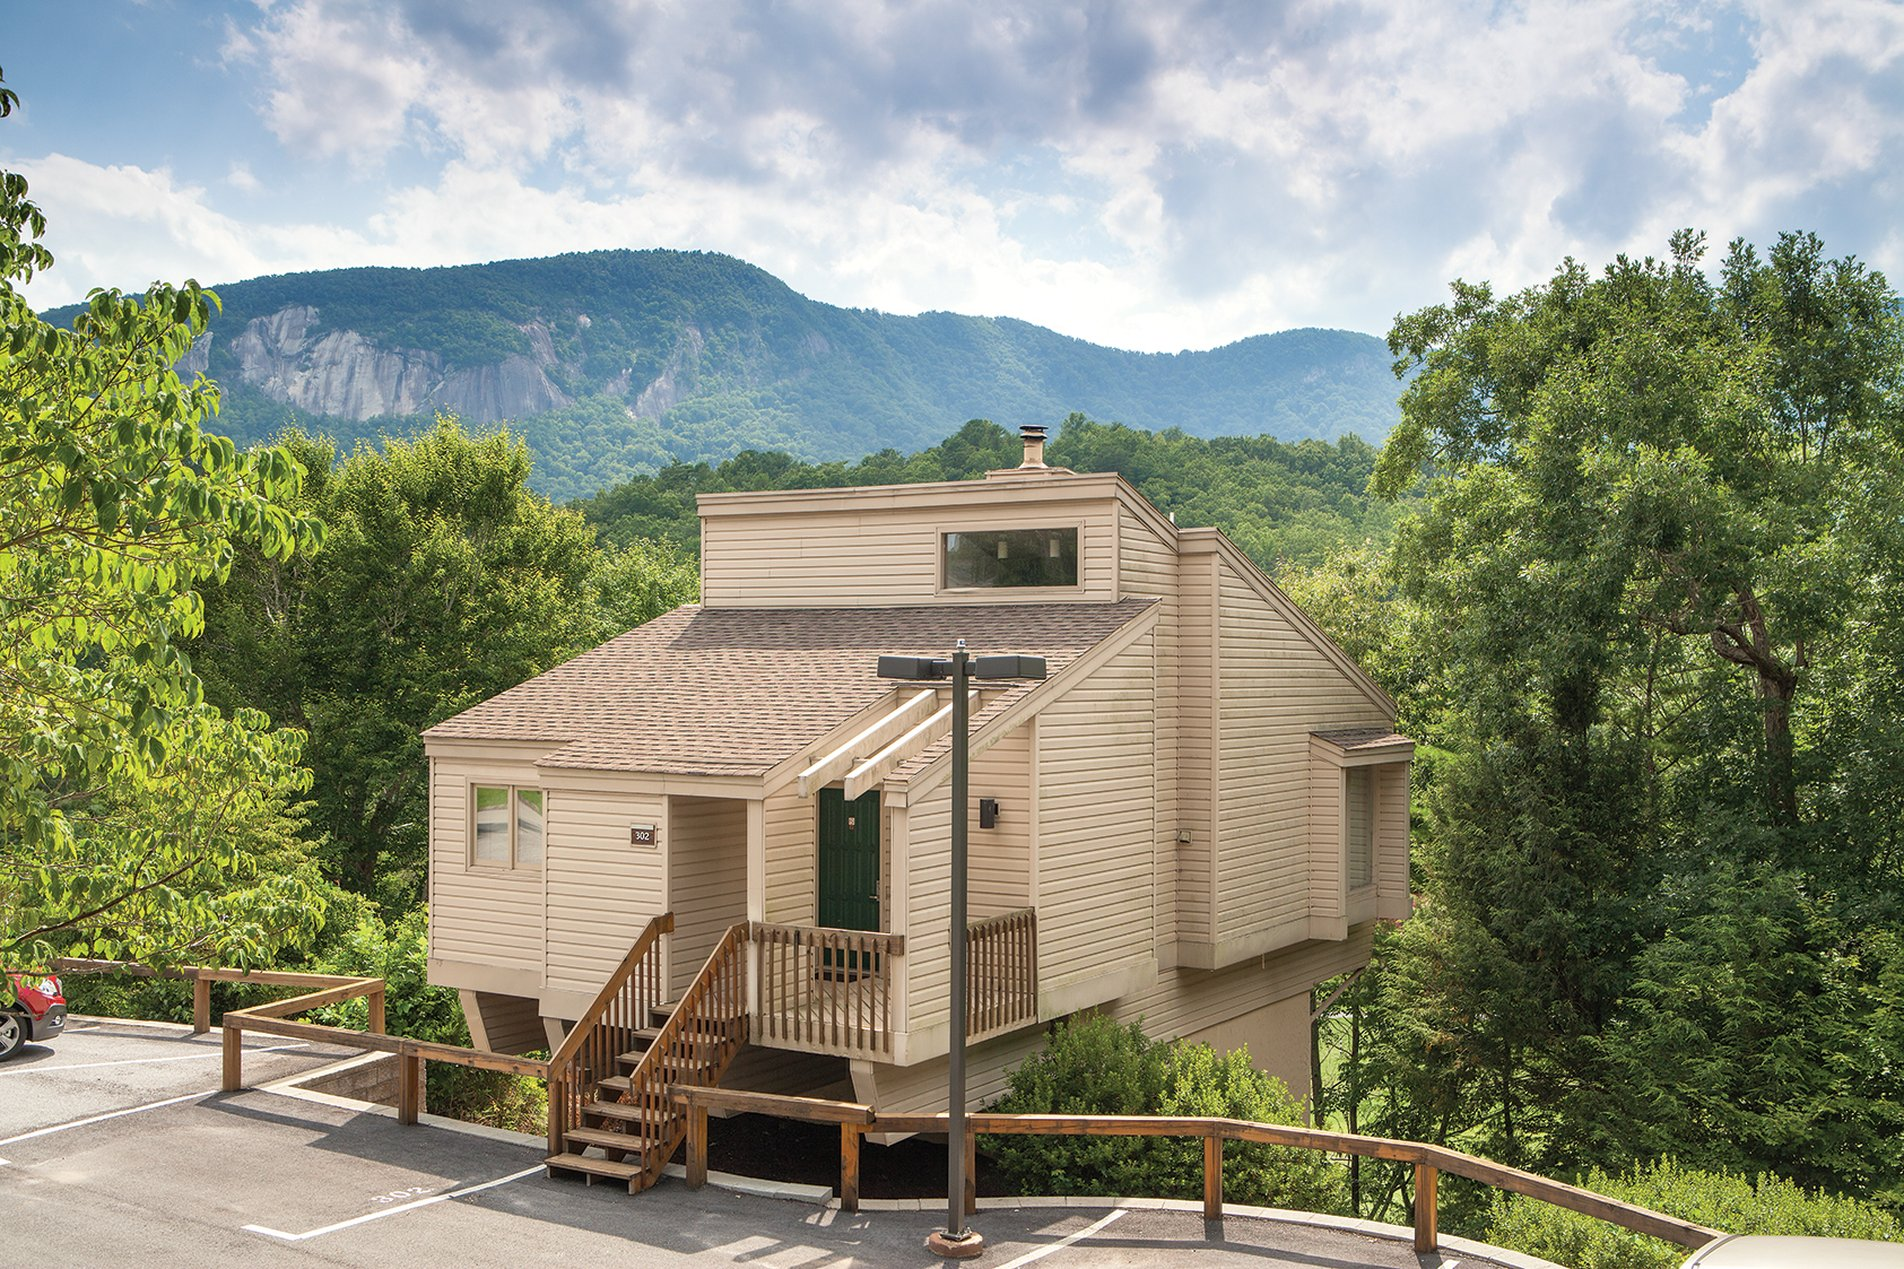 wyndham resort at fairfield mountains- first class lake lure, nc